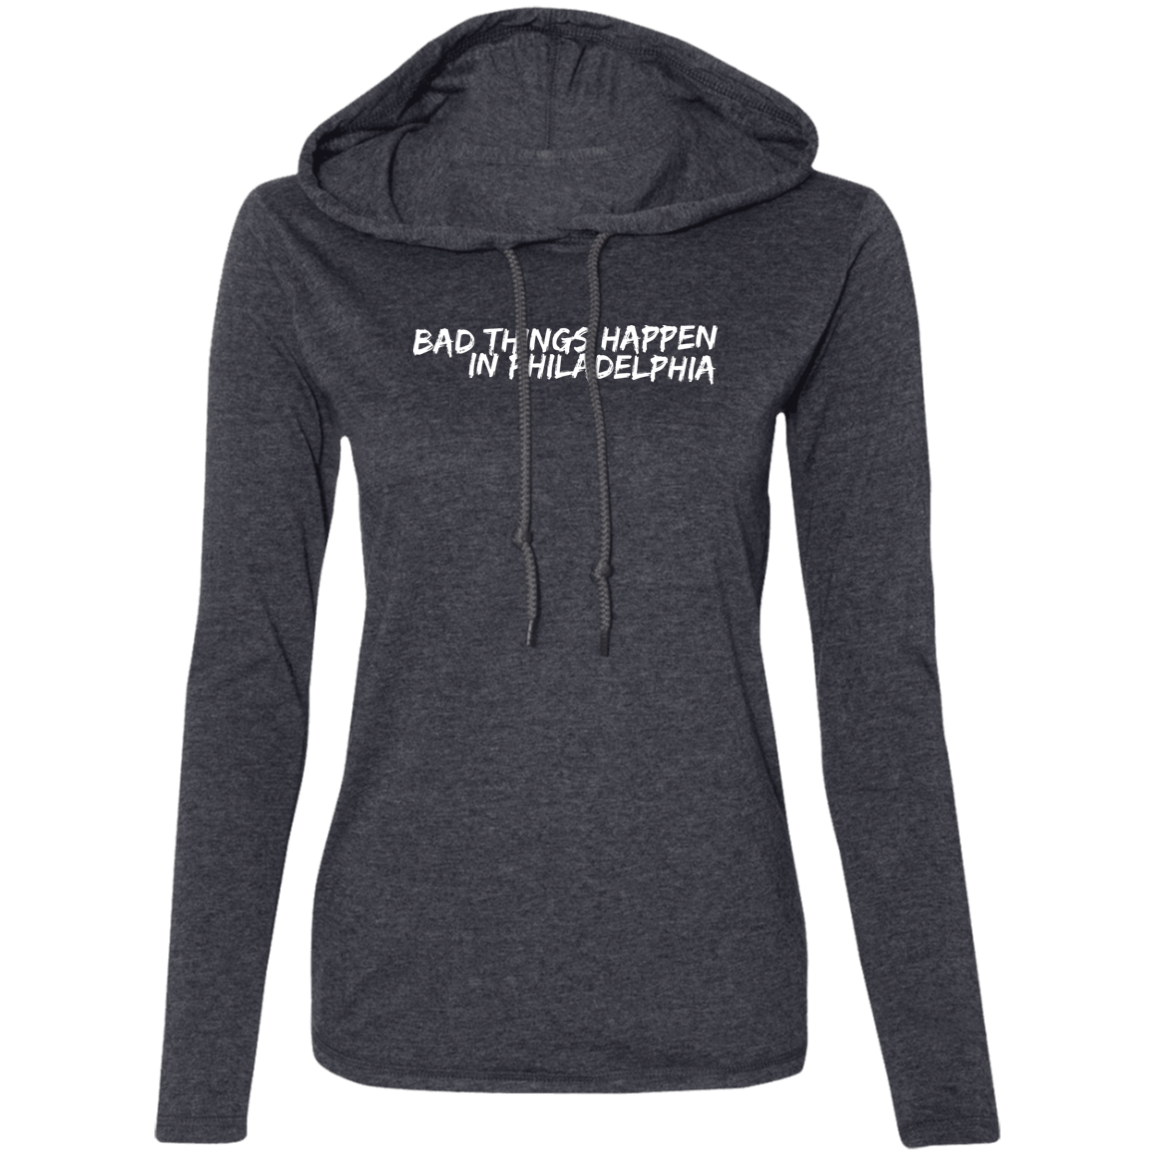 Bad Things Happen in Philadelphia Ladies' LS T-Shirt Hoodie